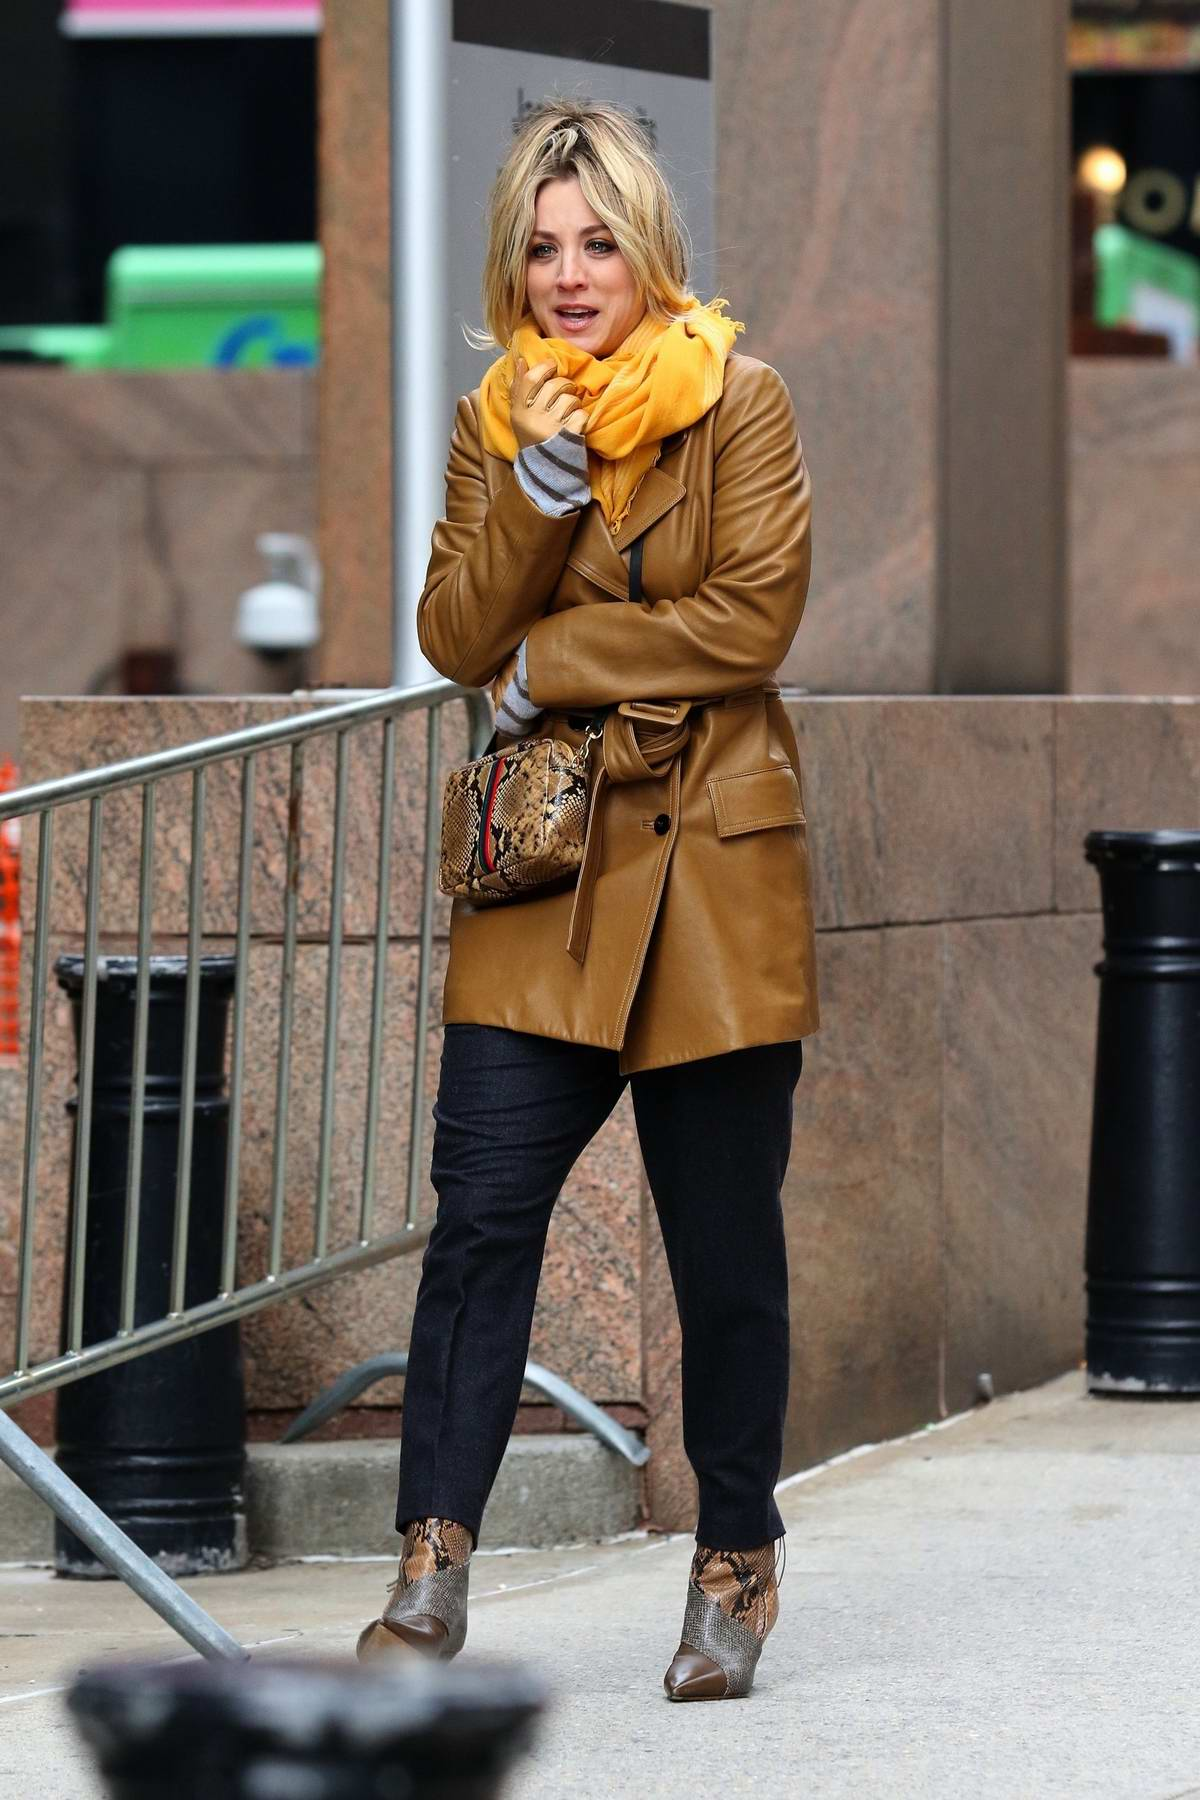 Kaley Cuoco braves the windy weather while on the set of 'The Flight Attendant' in New York City